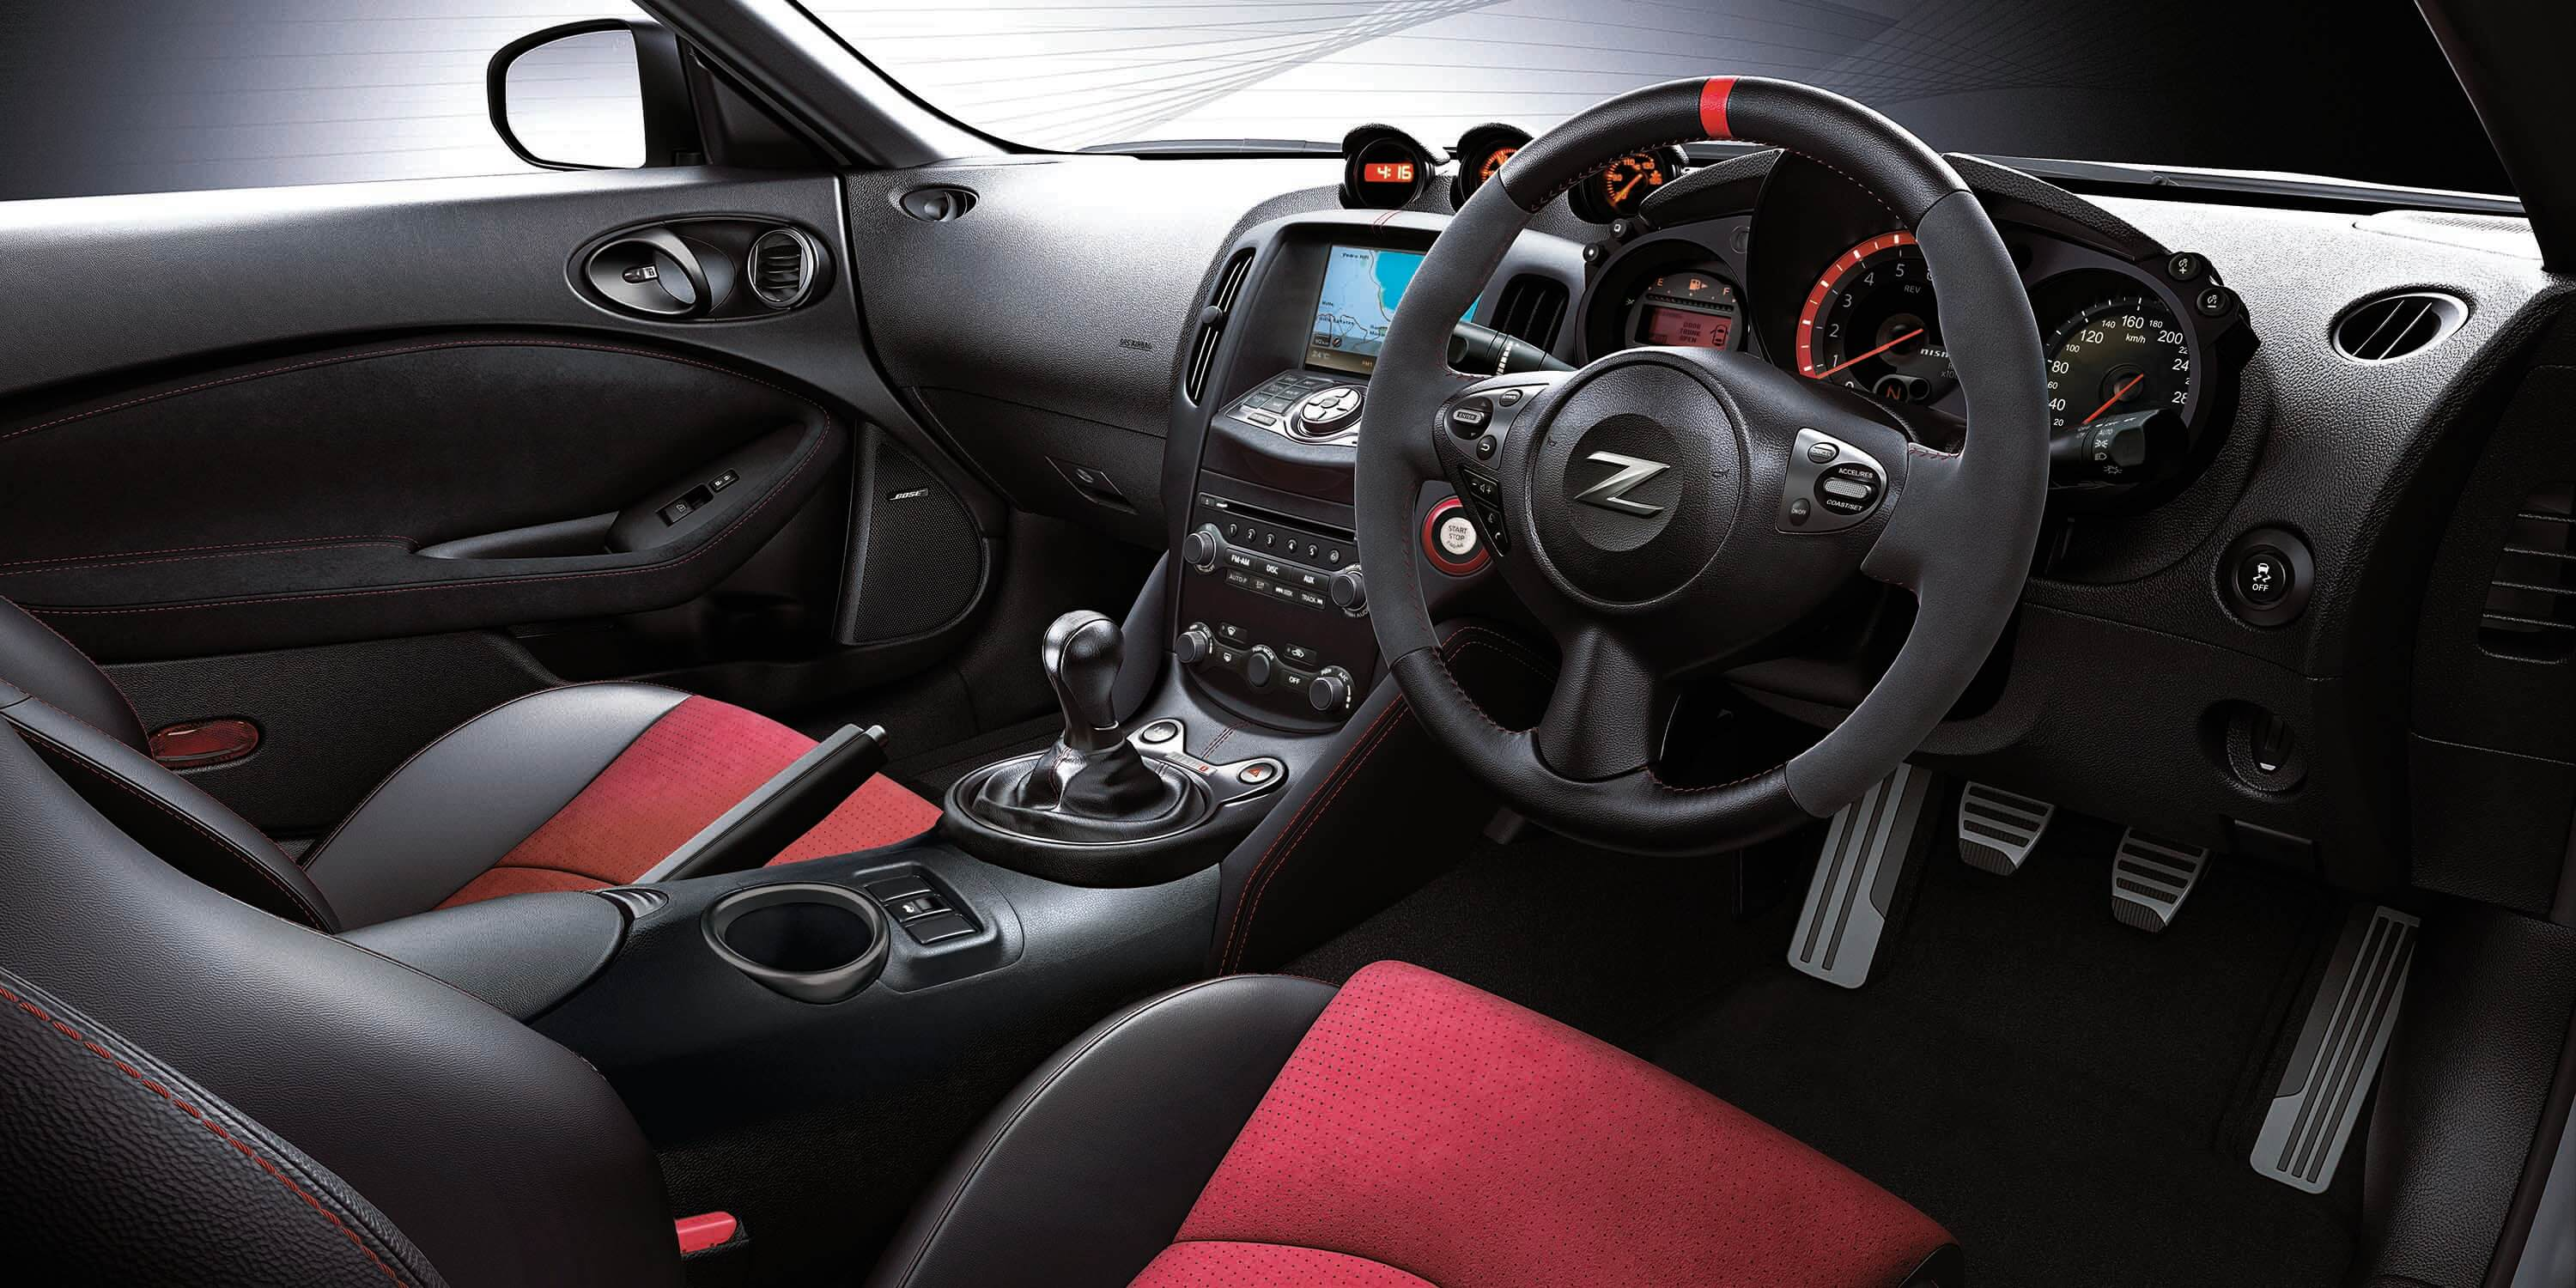 370Z interior with red trim highlights